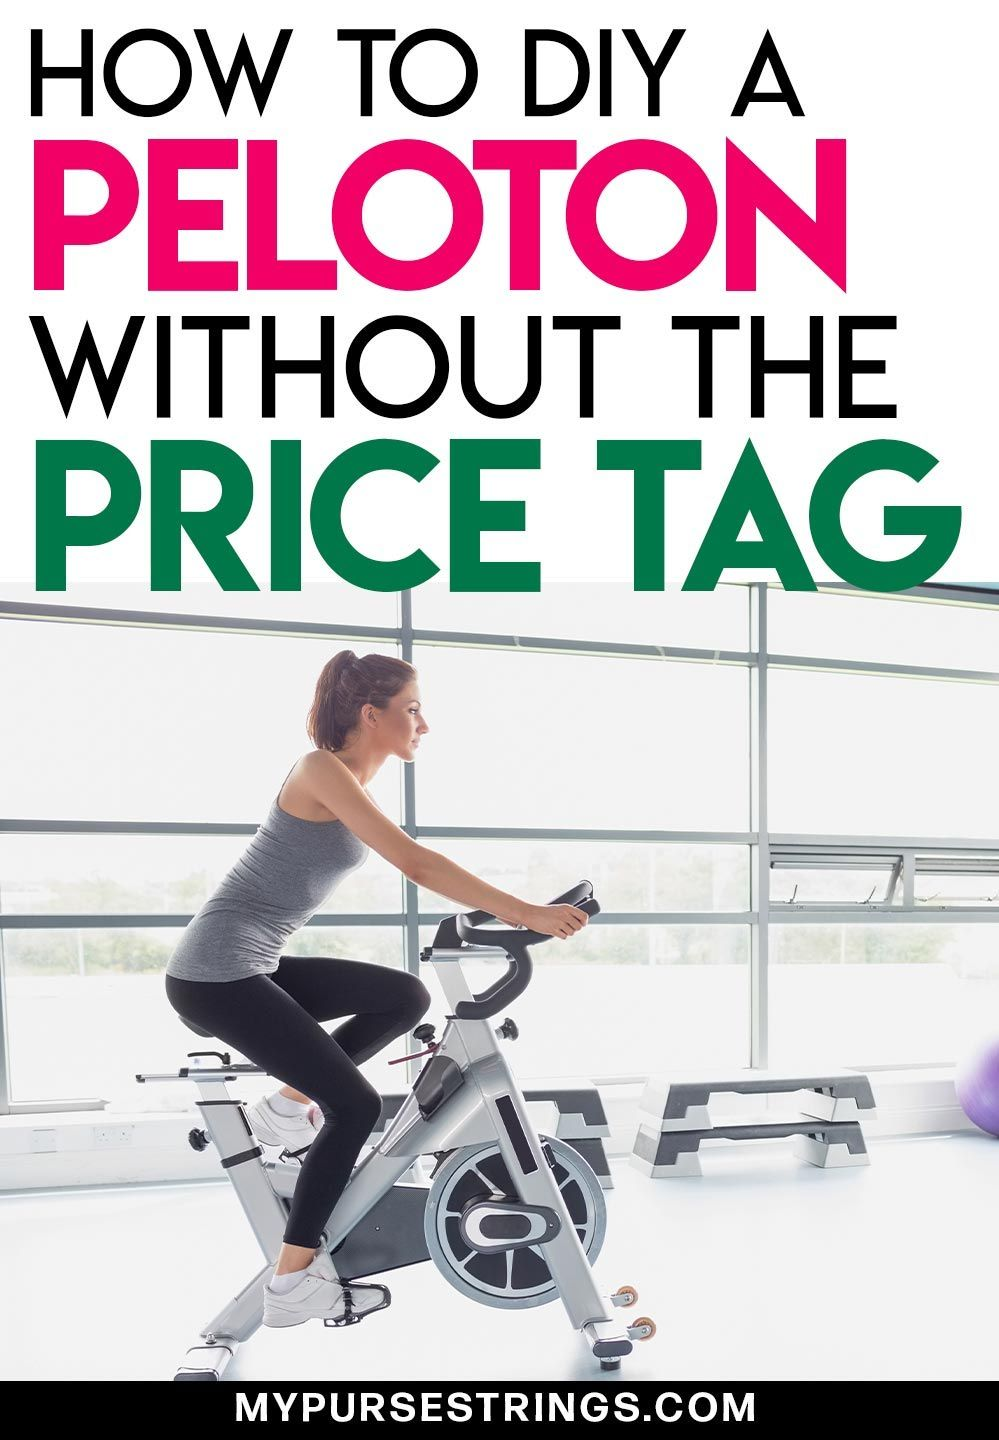 How To Get The Peloton Cycle Experience Without The Price Tag In